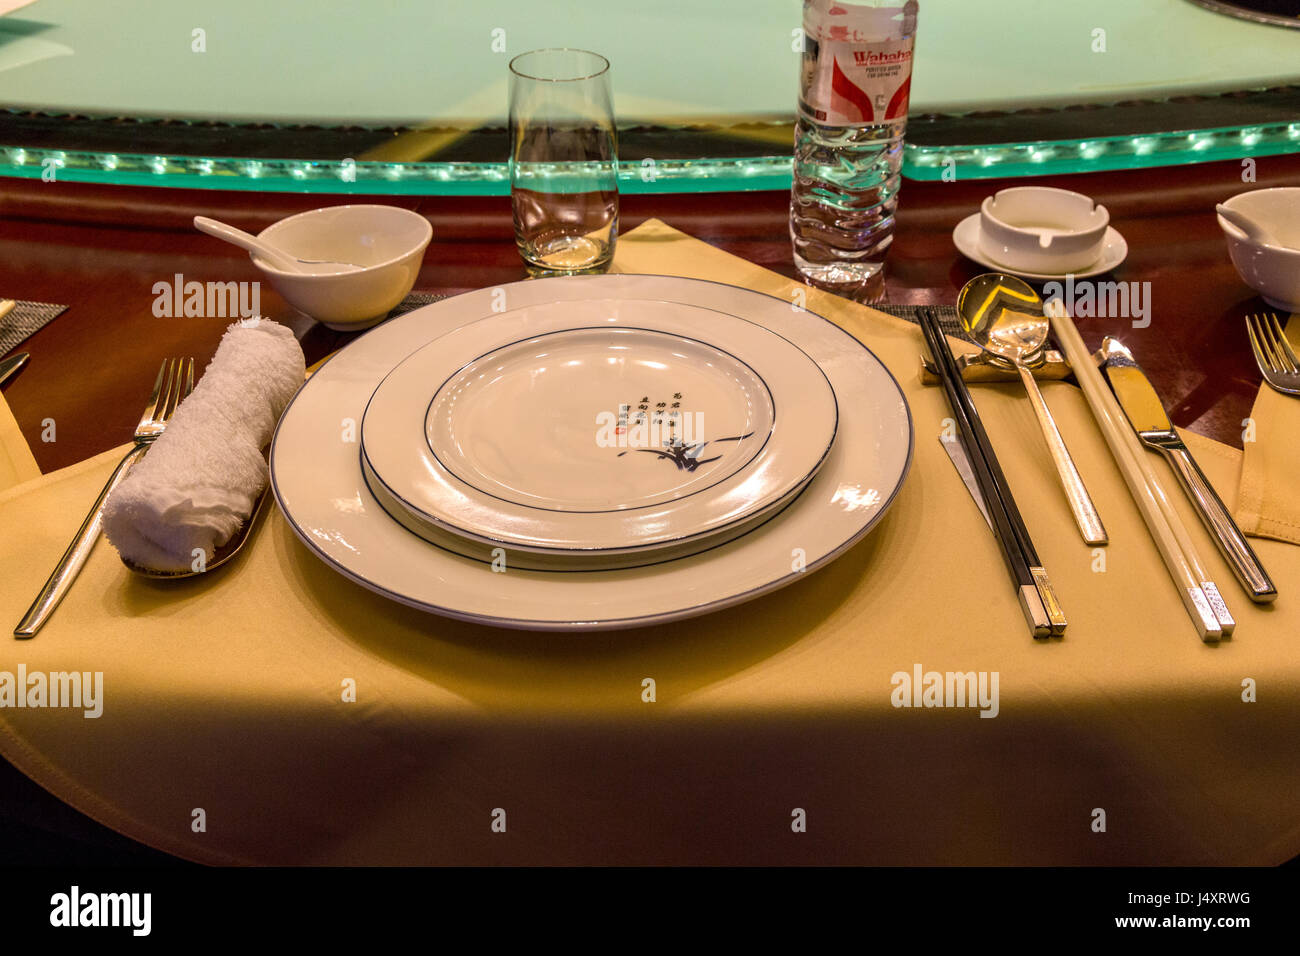 Chinese Table Place Setting with Chopsticks. Lazy Susan (Rotating Serving Table) in background. & China. Chinese Table Place Setting with Chopsticks. Lazy Susan Stock ...